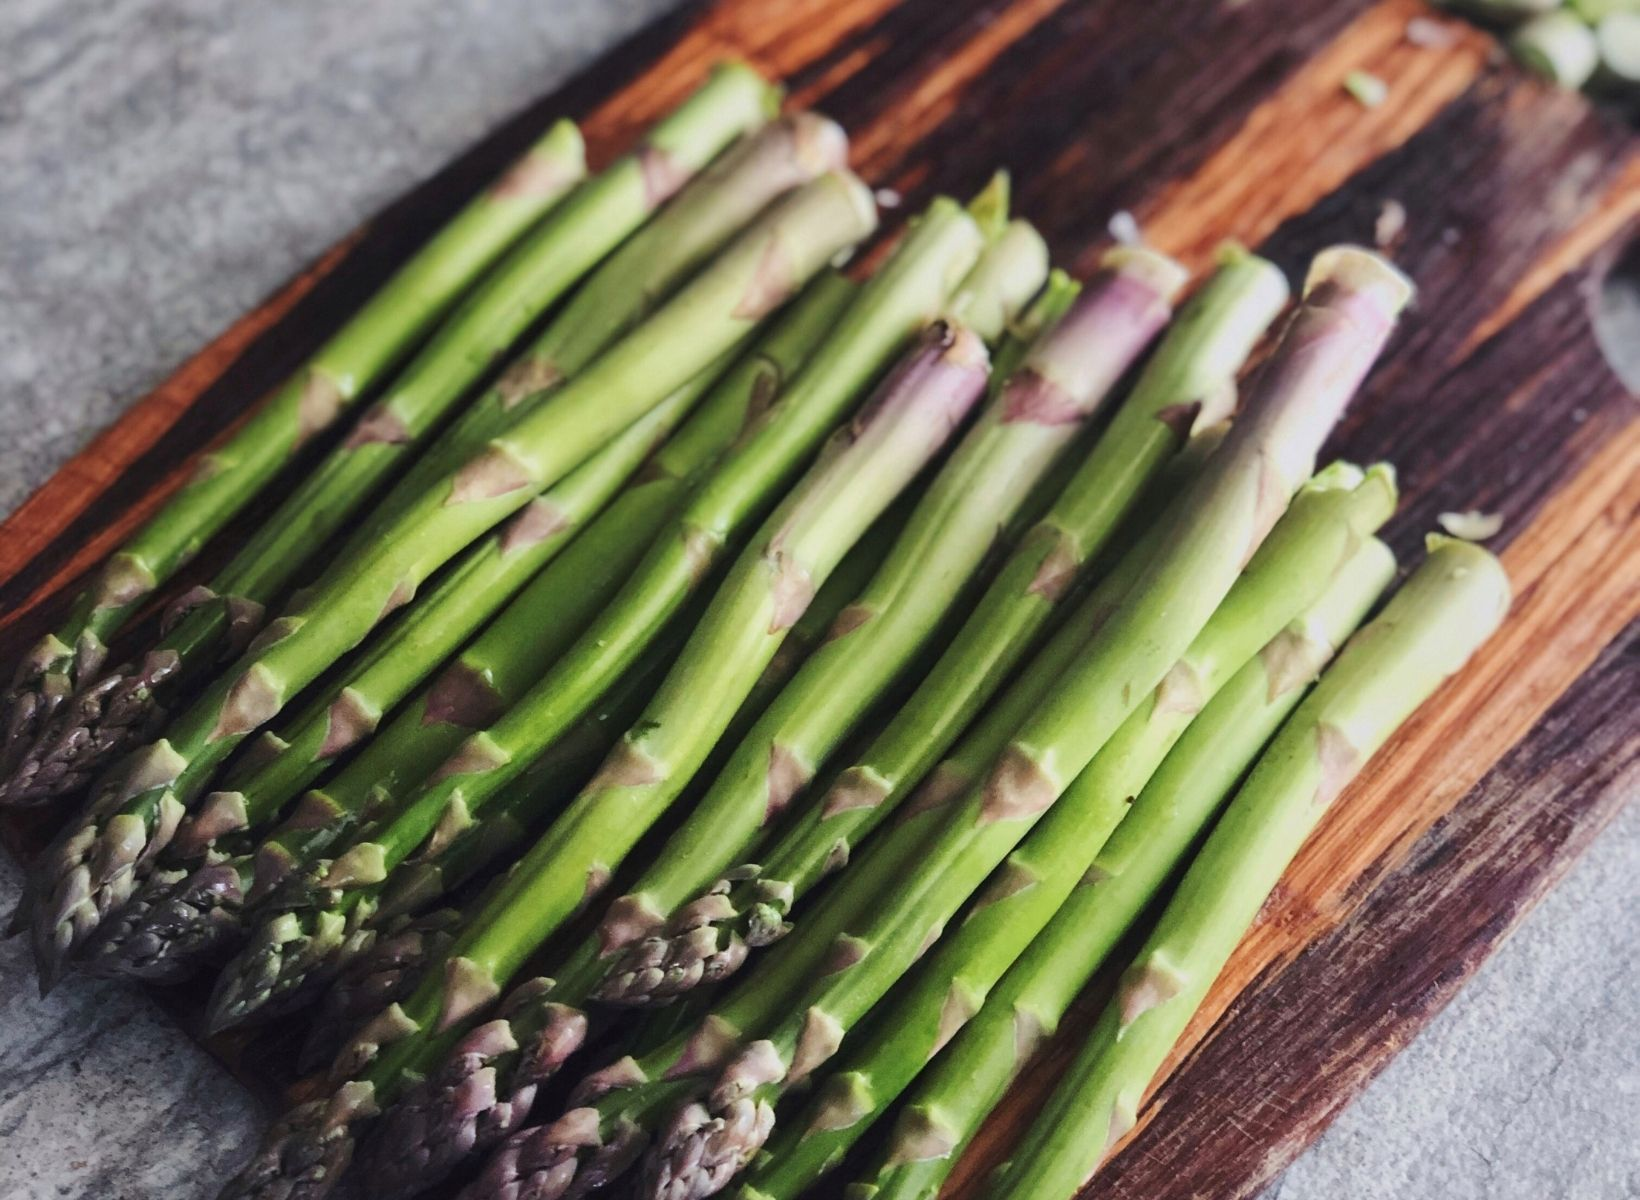 Asparagus spears, a prebiotic food, on a wood cutting board with a knife next to them